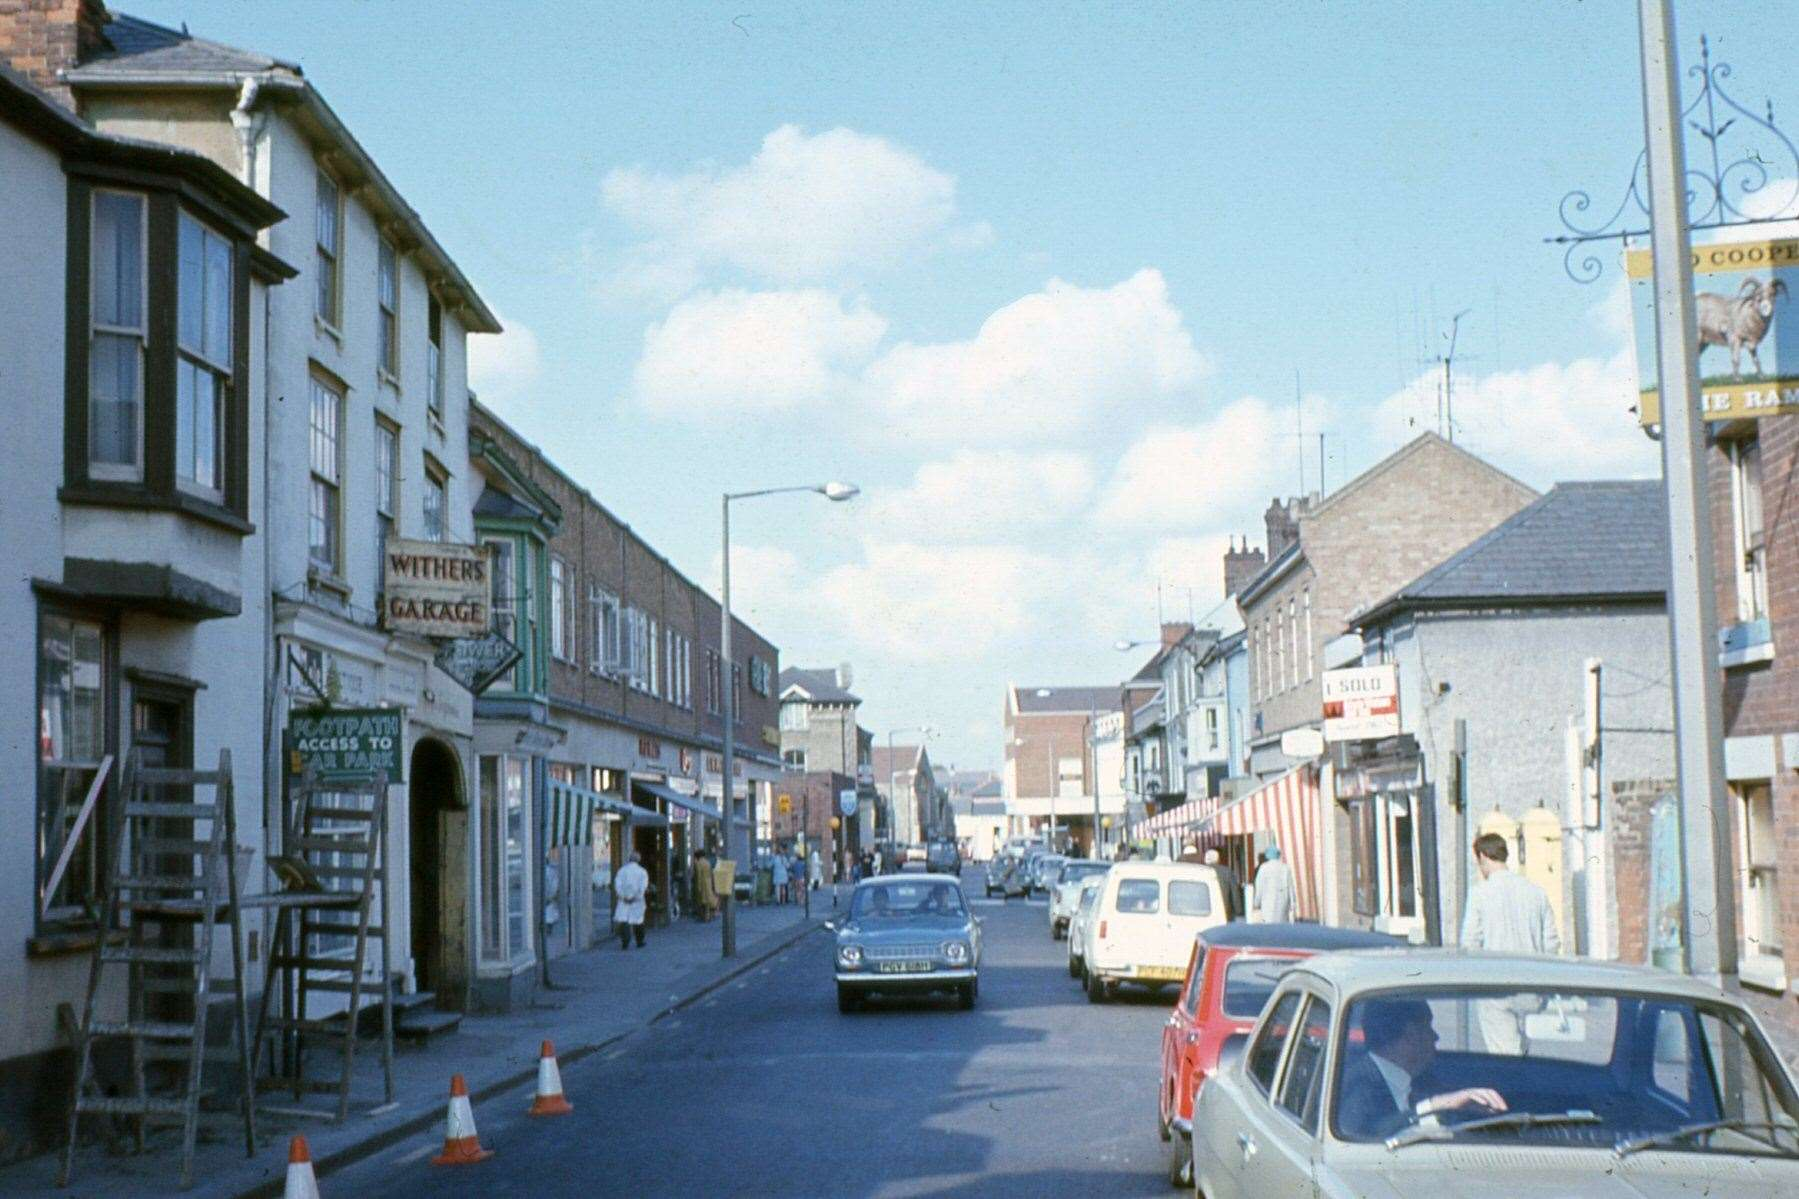 Haverhill High Street 1970s with two-way traffic. Picture: Haverhill and District Local History Group